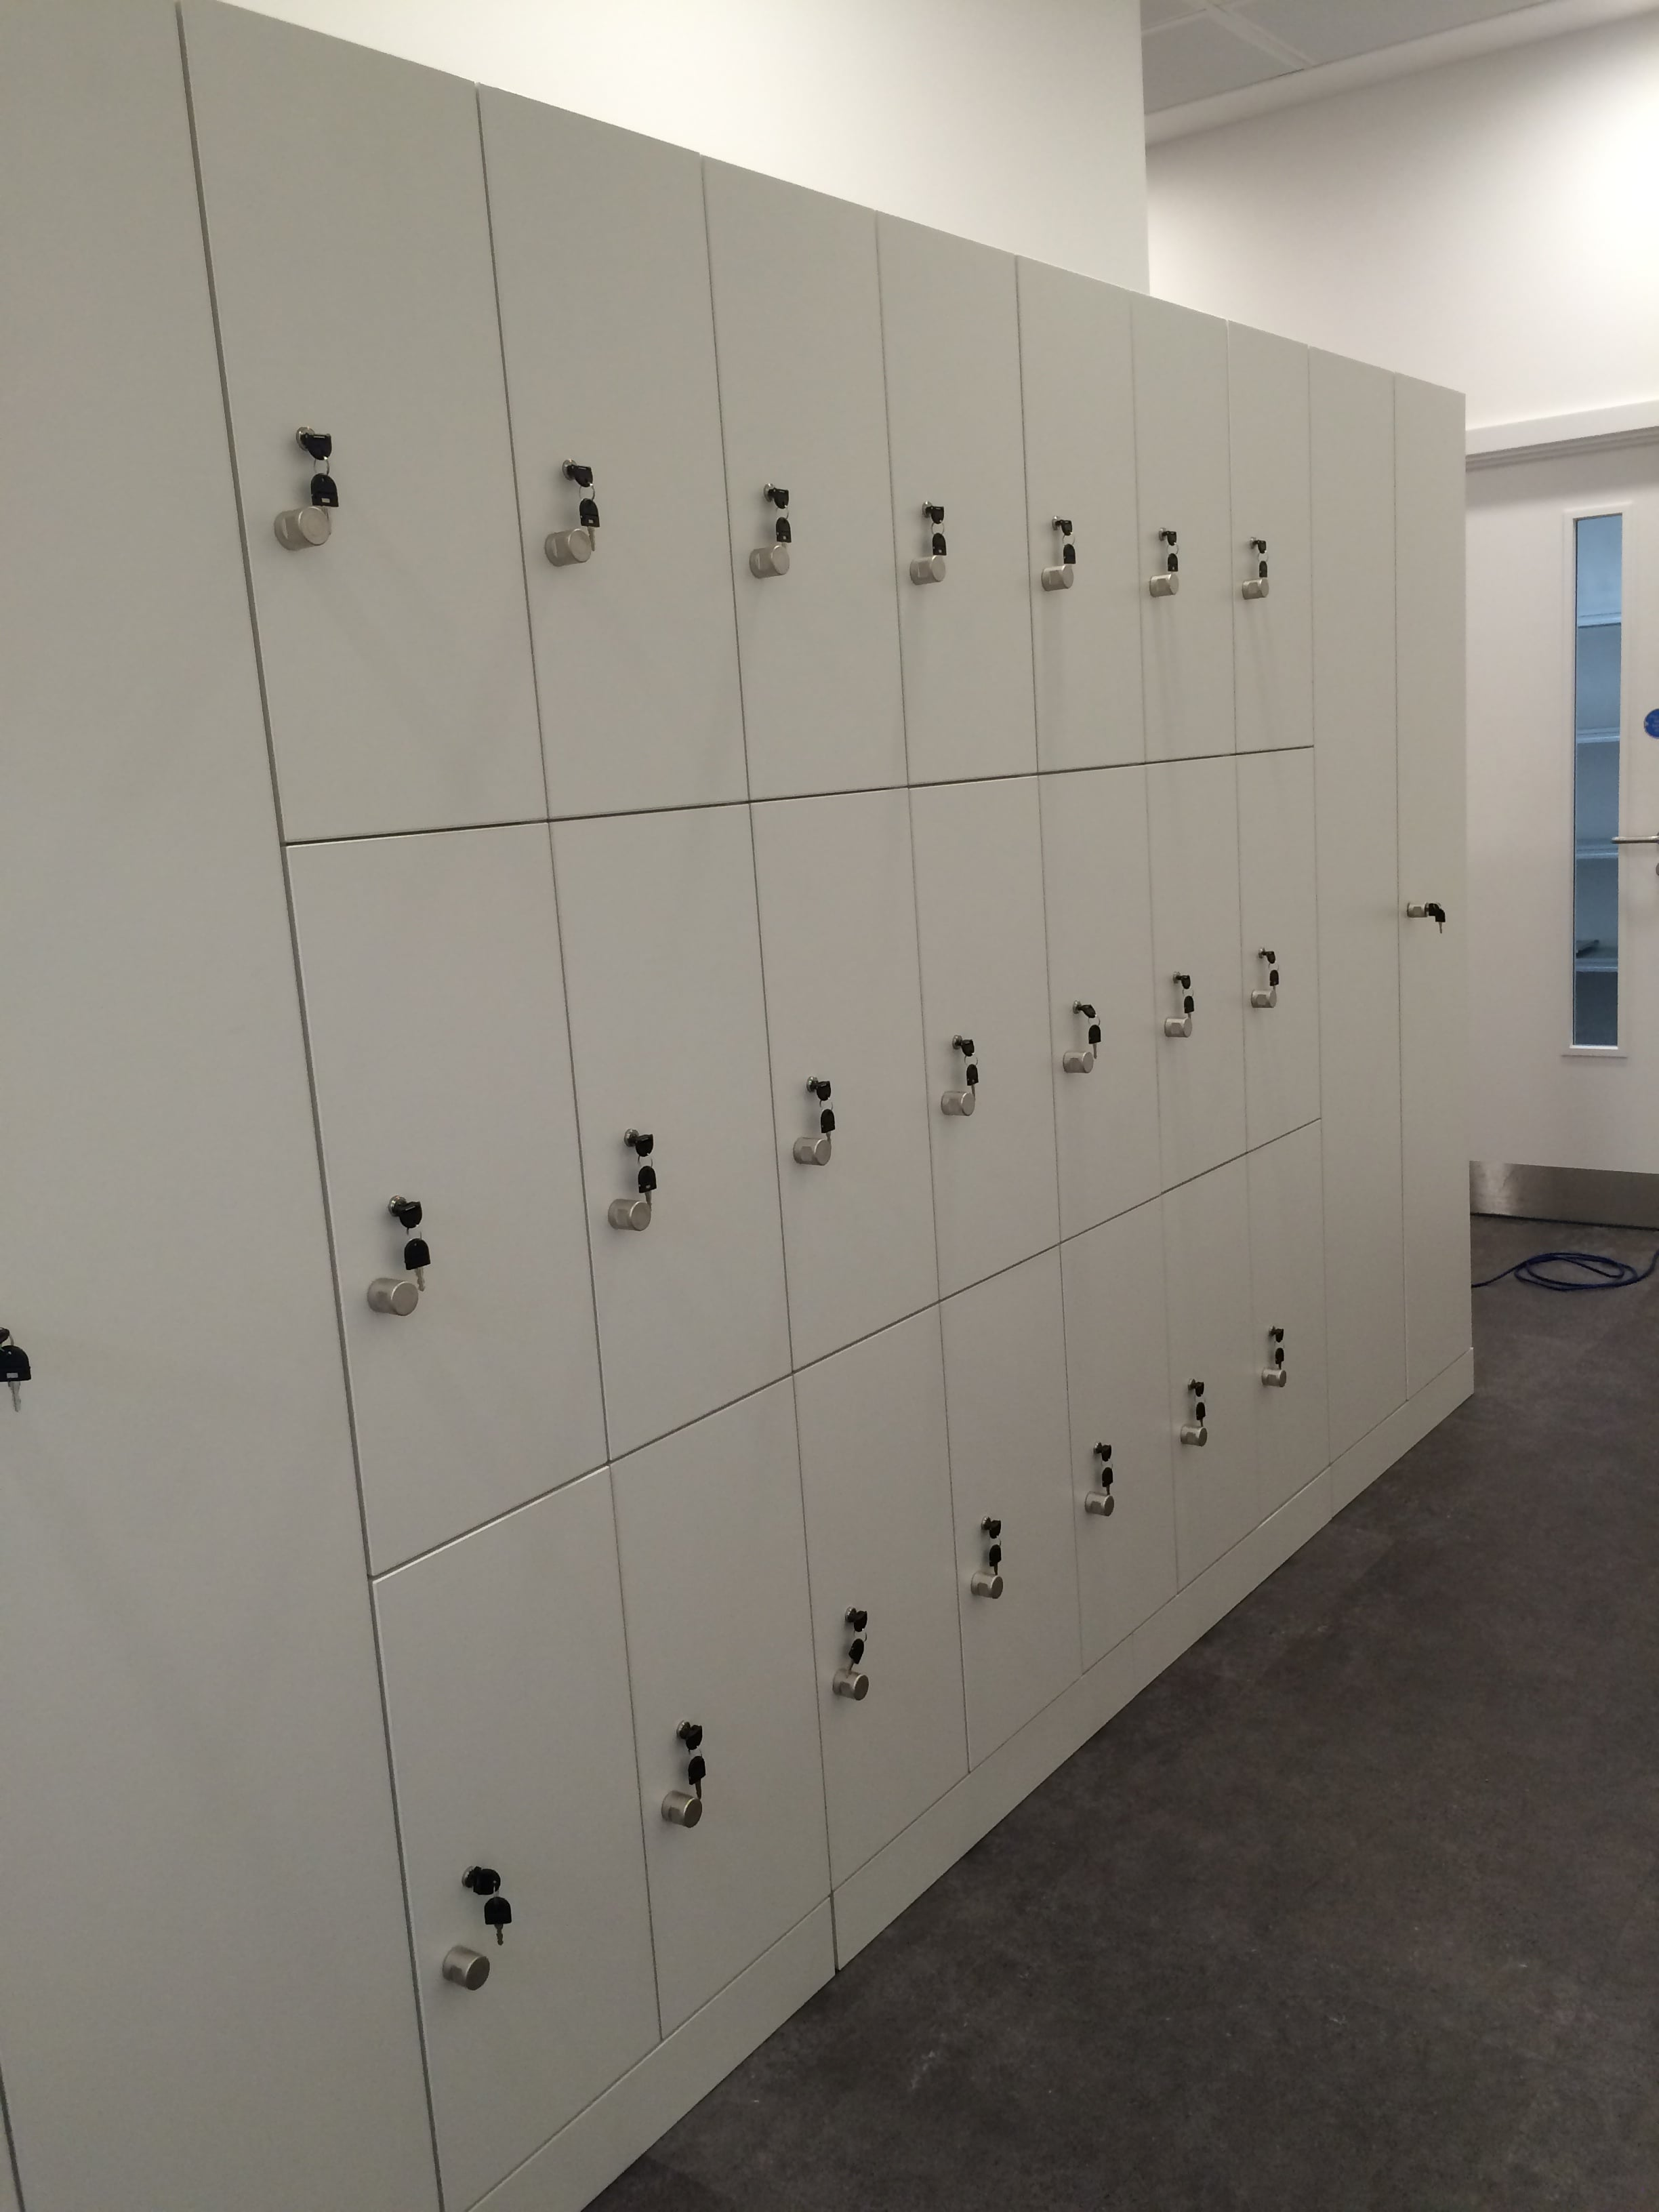 The private staff space needed to be secure and provide adequate storage for all staff during their working day. We provided lockable lockers to hold their bags and small- to medium-sized items, while also ensuring that their coats and jackets did not become creased by supplying full-length cupboards with hanging facilities.